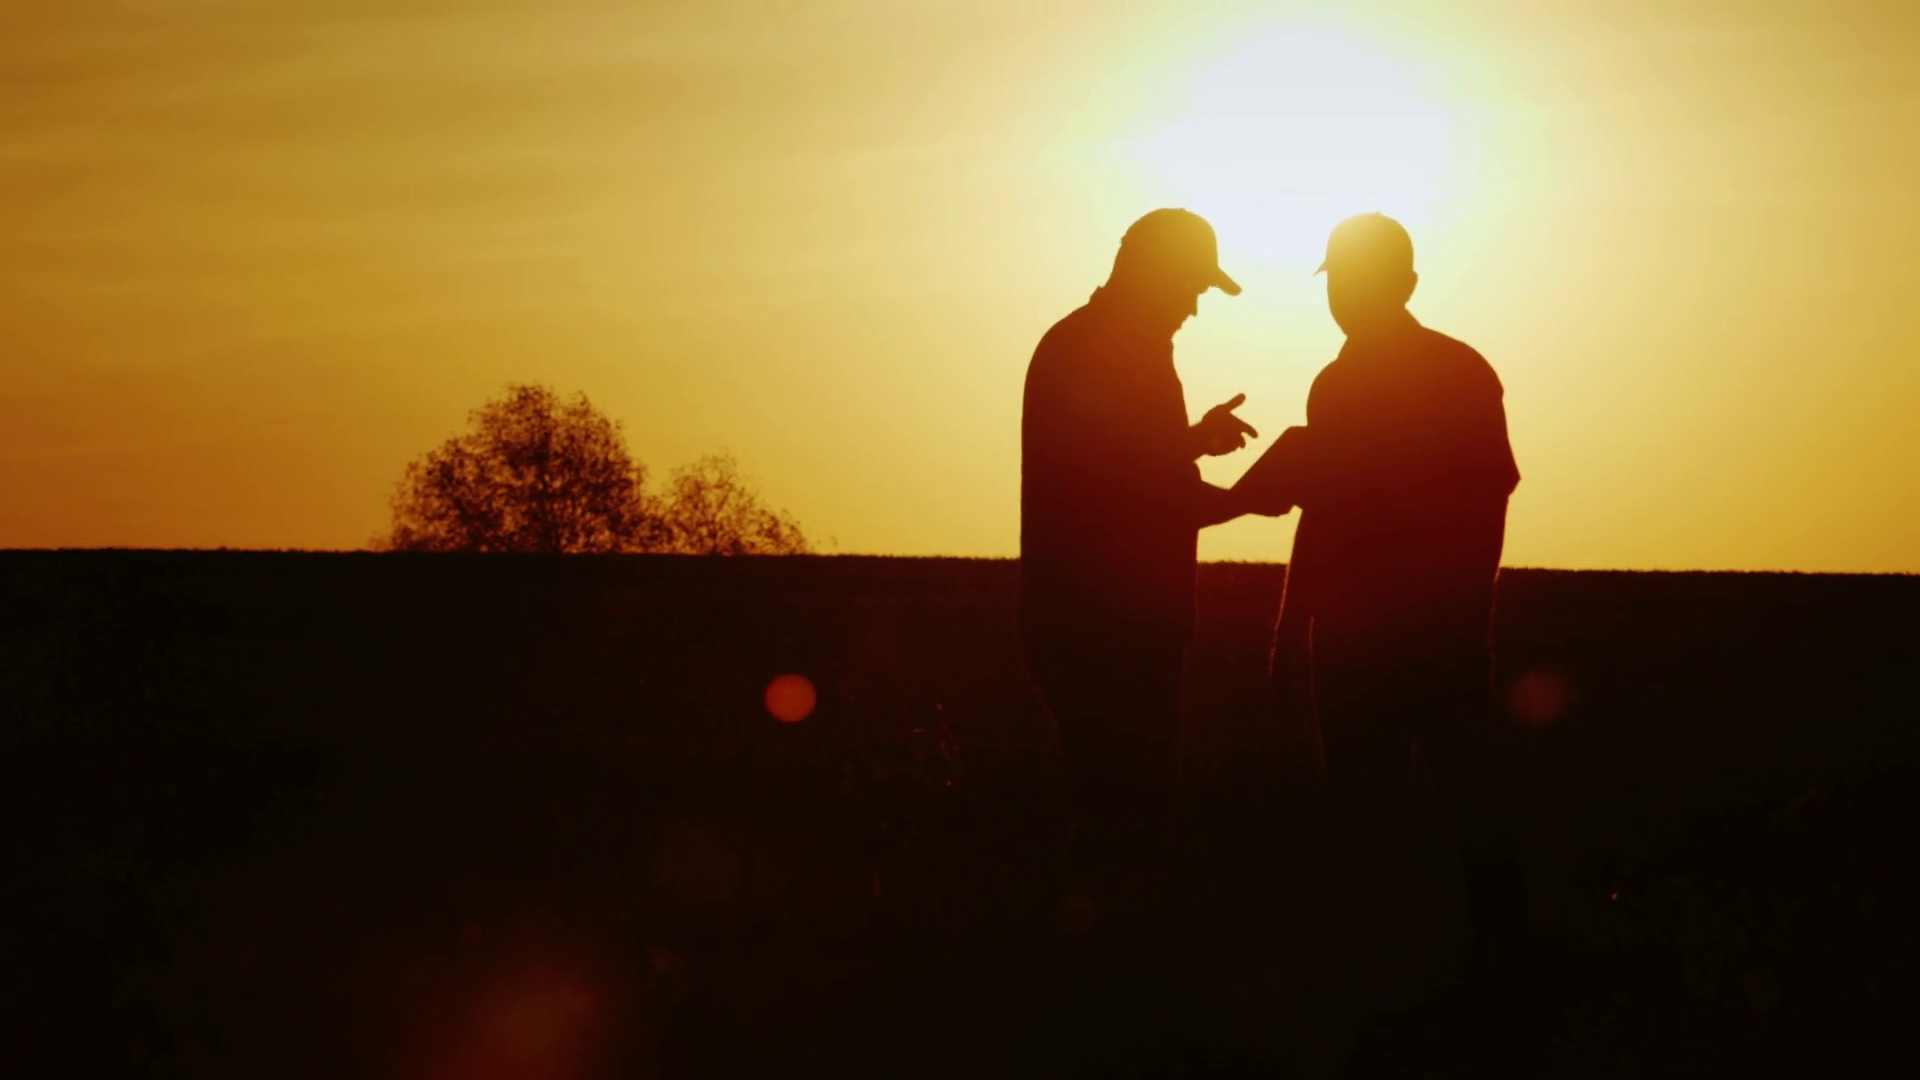 https://www.centroveterinariosanmartino.it/wp-content/uploads/2019/03/videoblocks-a-firm-handshake-of-two-farmers-on-the-field-they-communicate-use-a-tablet-at-sunset_r6fxf-rjw_thumbnail-full01.png